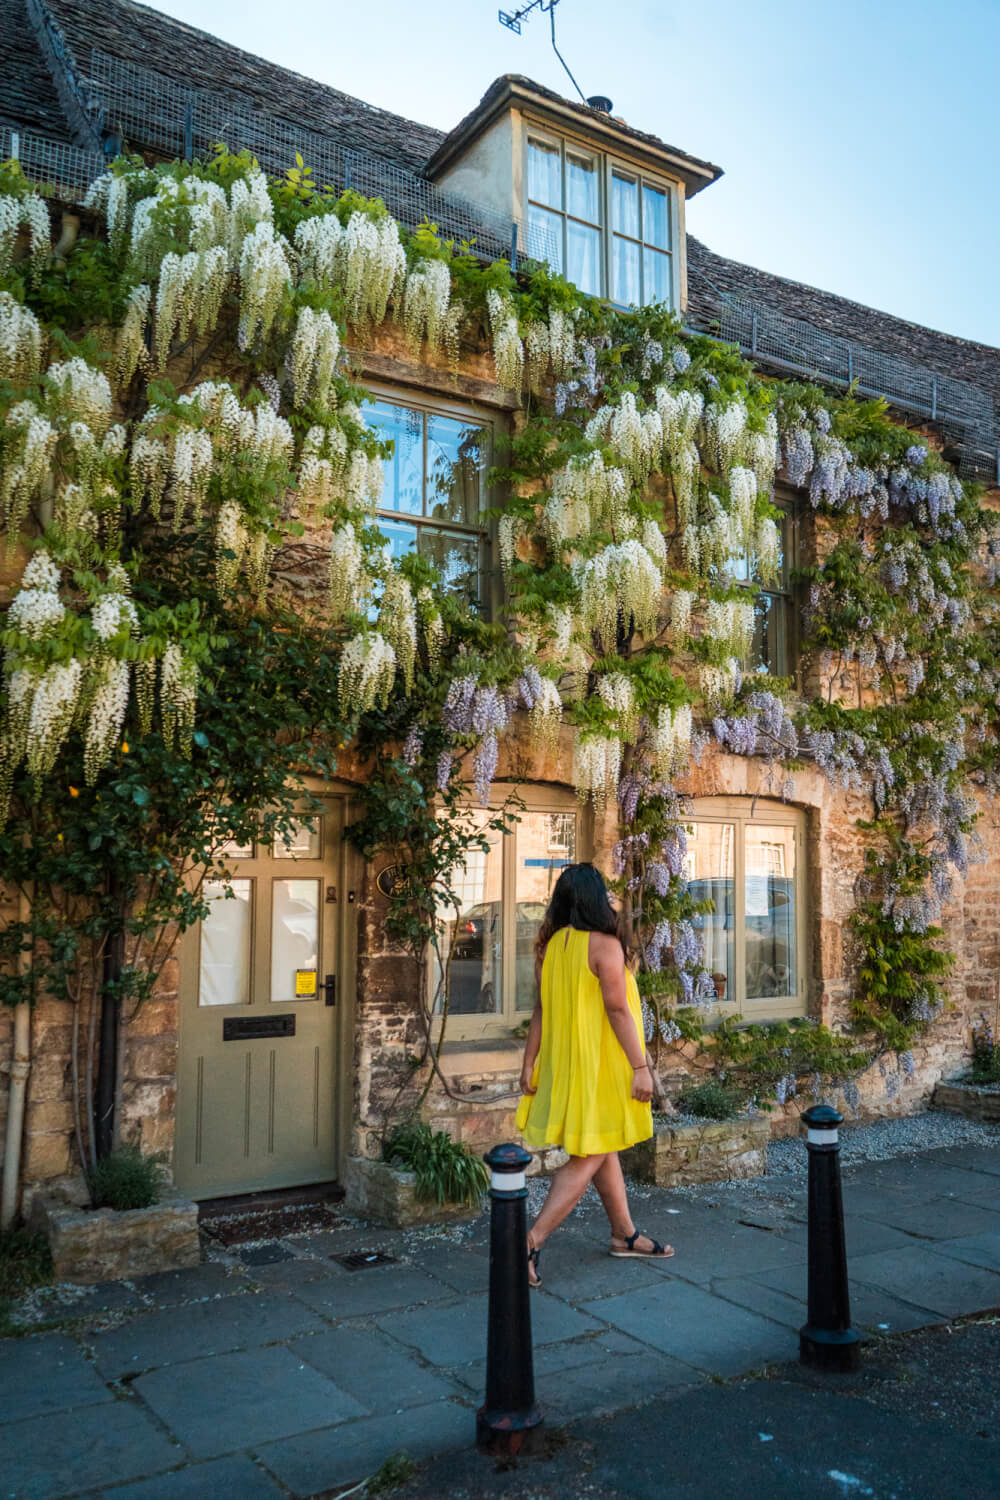 Wisteria in Burford, England, in the Cotswolds